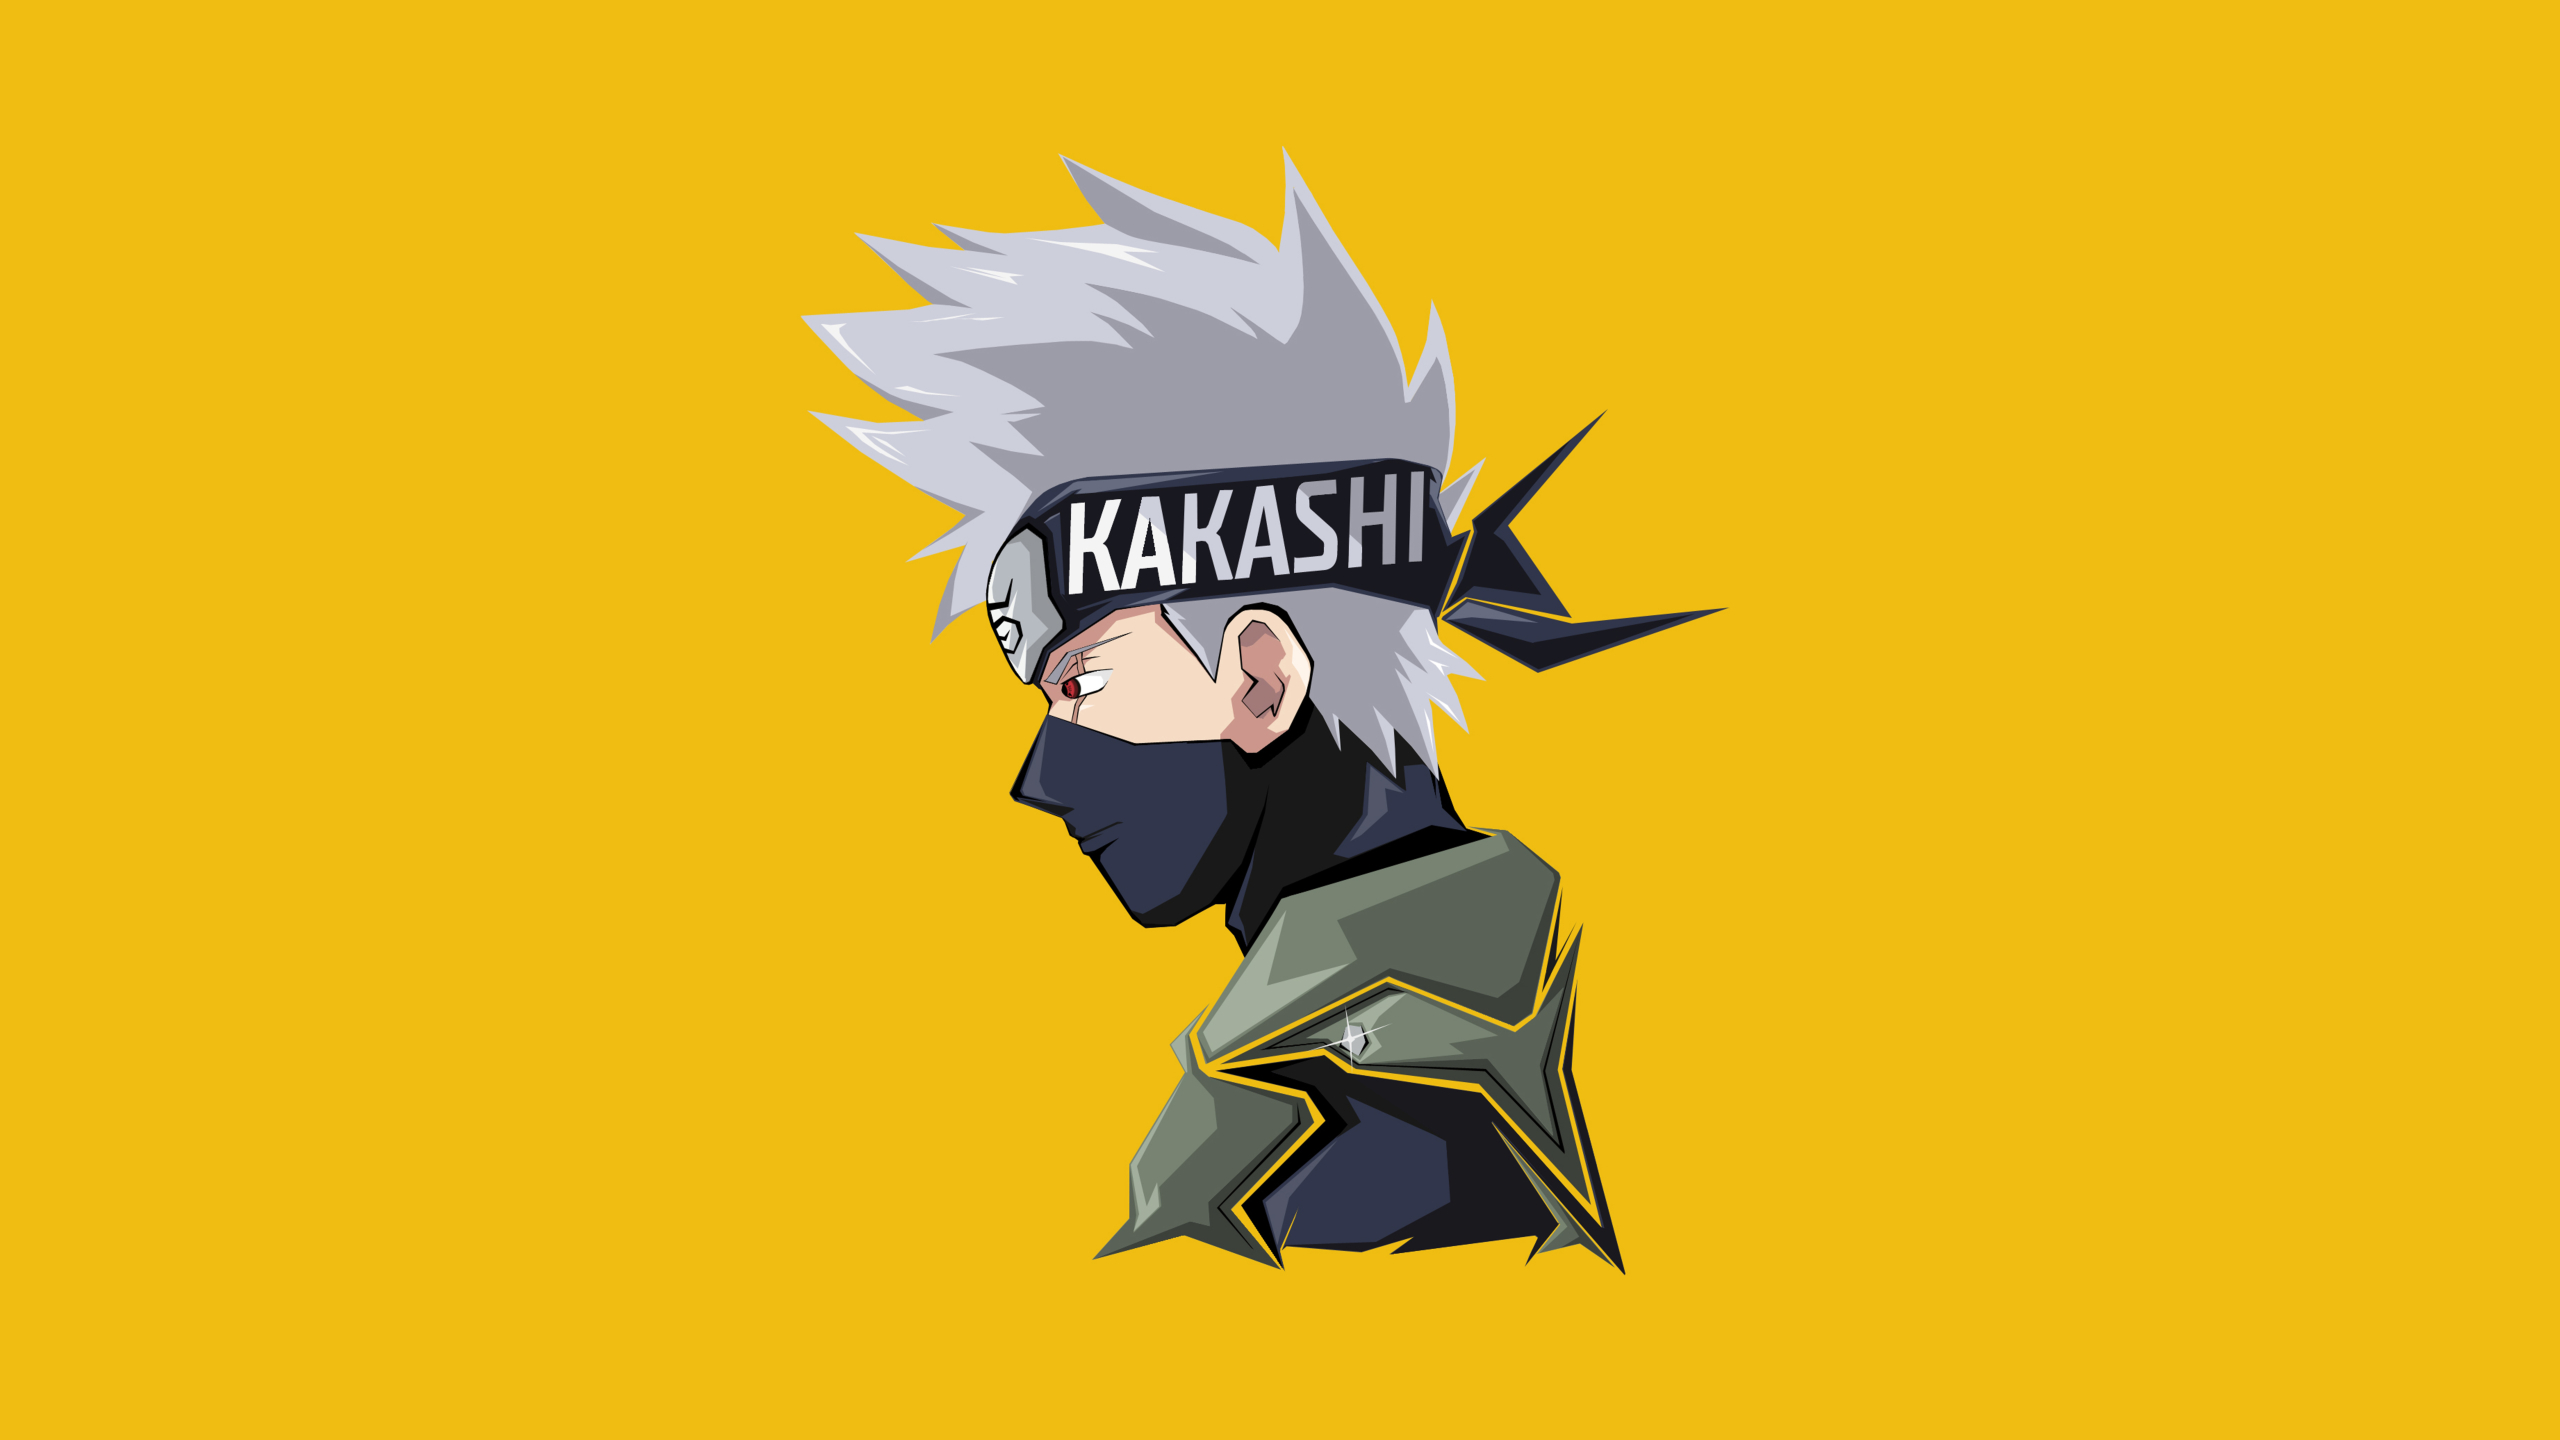 2560x1440 Kakashi Hatake Minimal 4k 8k 1440p Resolution Wallpaper Hd Minimalist 4k Wallpapers Images Photos And Background